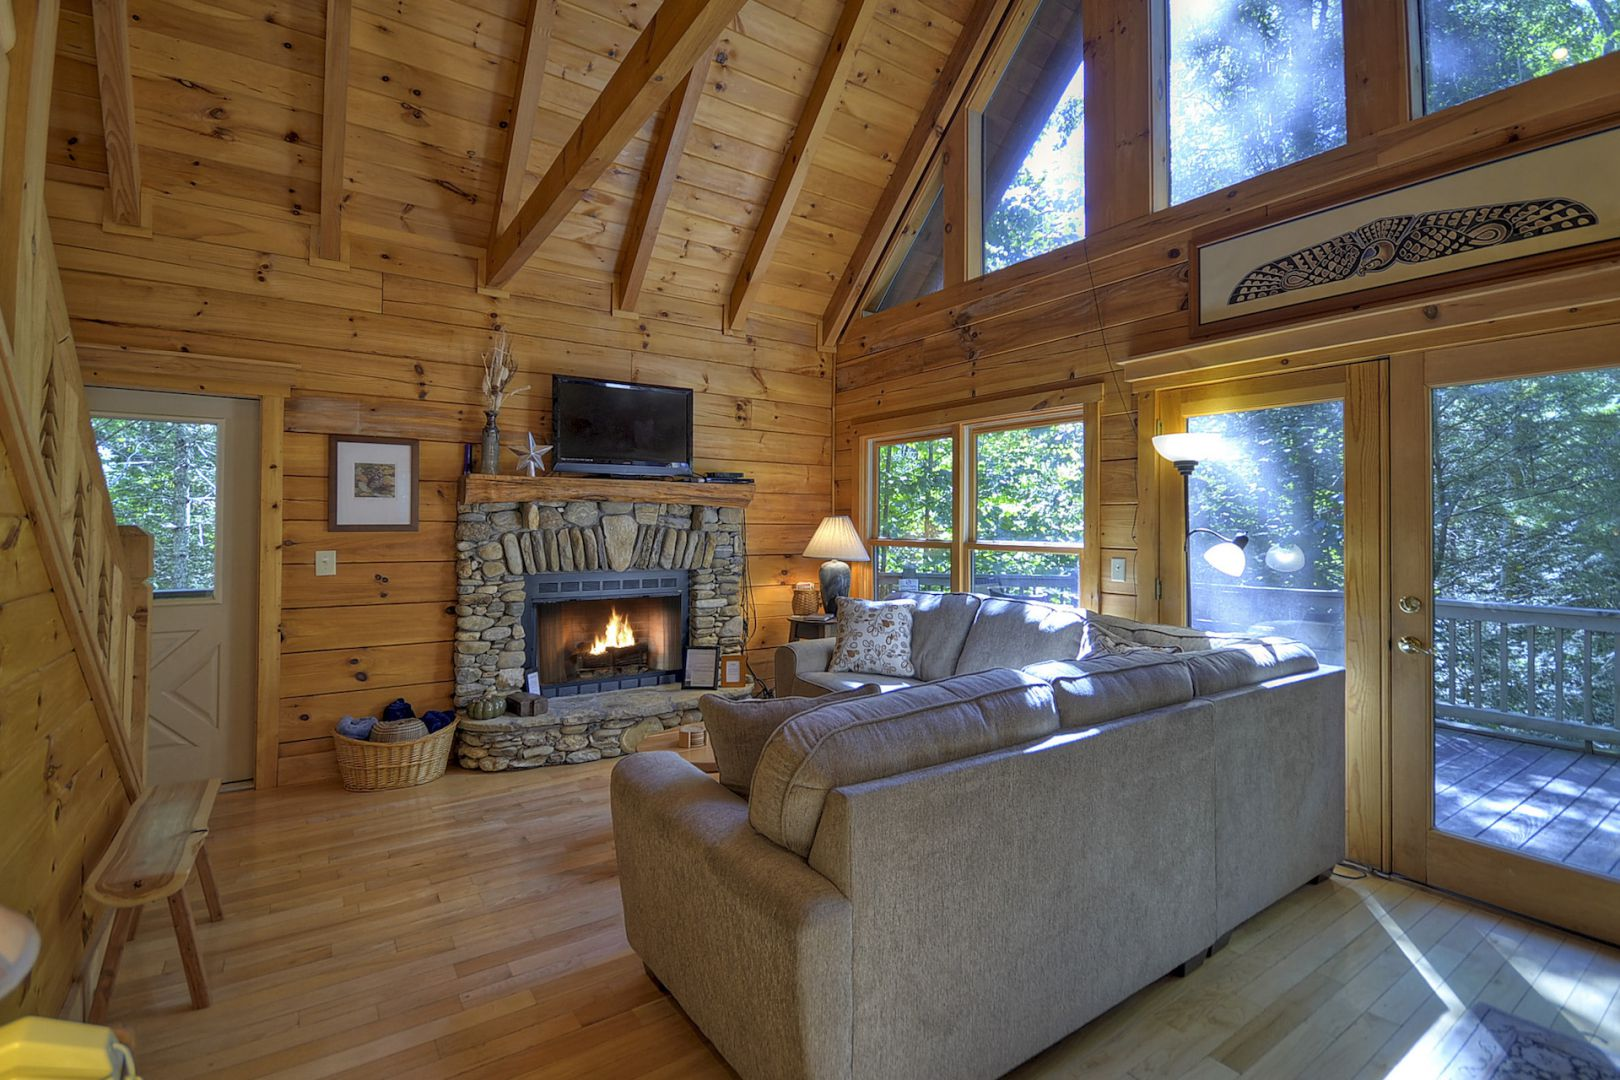 Excellent Thunder Falls Rental Cabin Cuddle Up Cabin Rentals Download Free Architecture Designs Sospemadebymaigaardcom